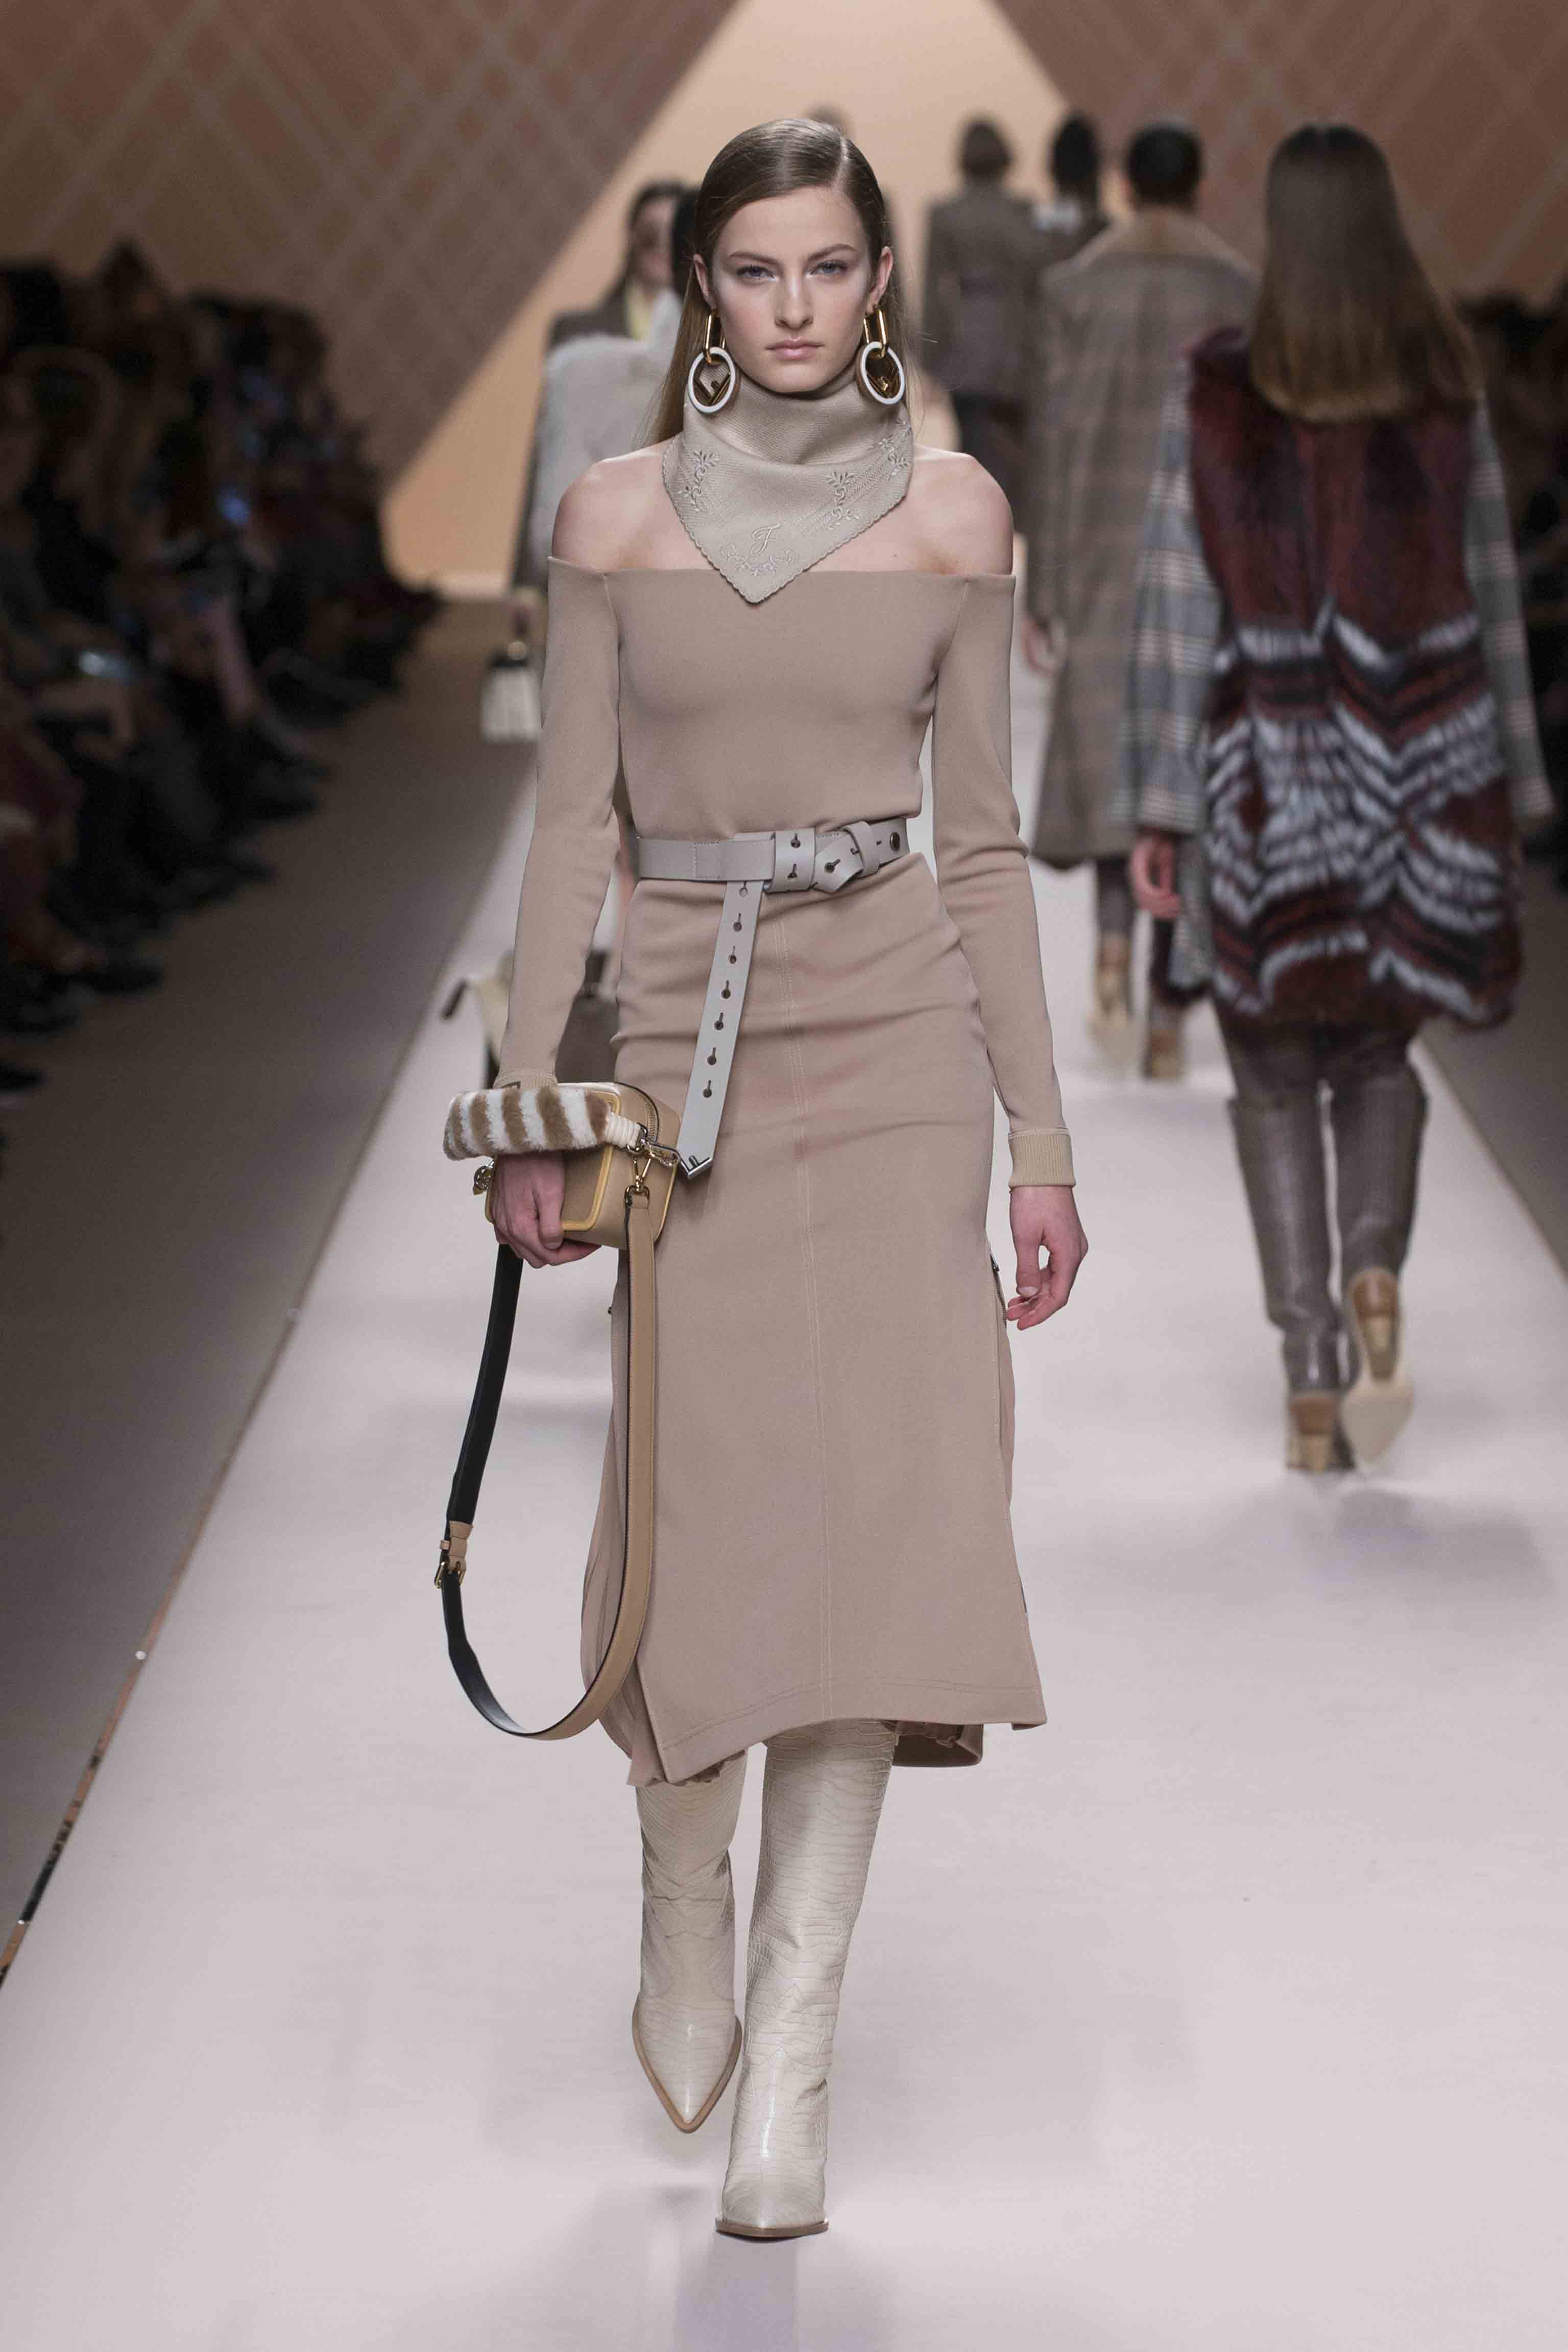 fashion week article New york fashion week news find breaking news, commentary, and archival information about new york fashion week from the tribunedigital-chicagotribune.